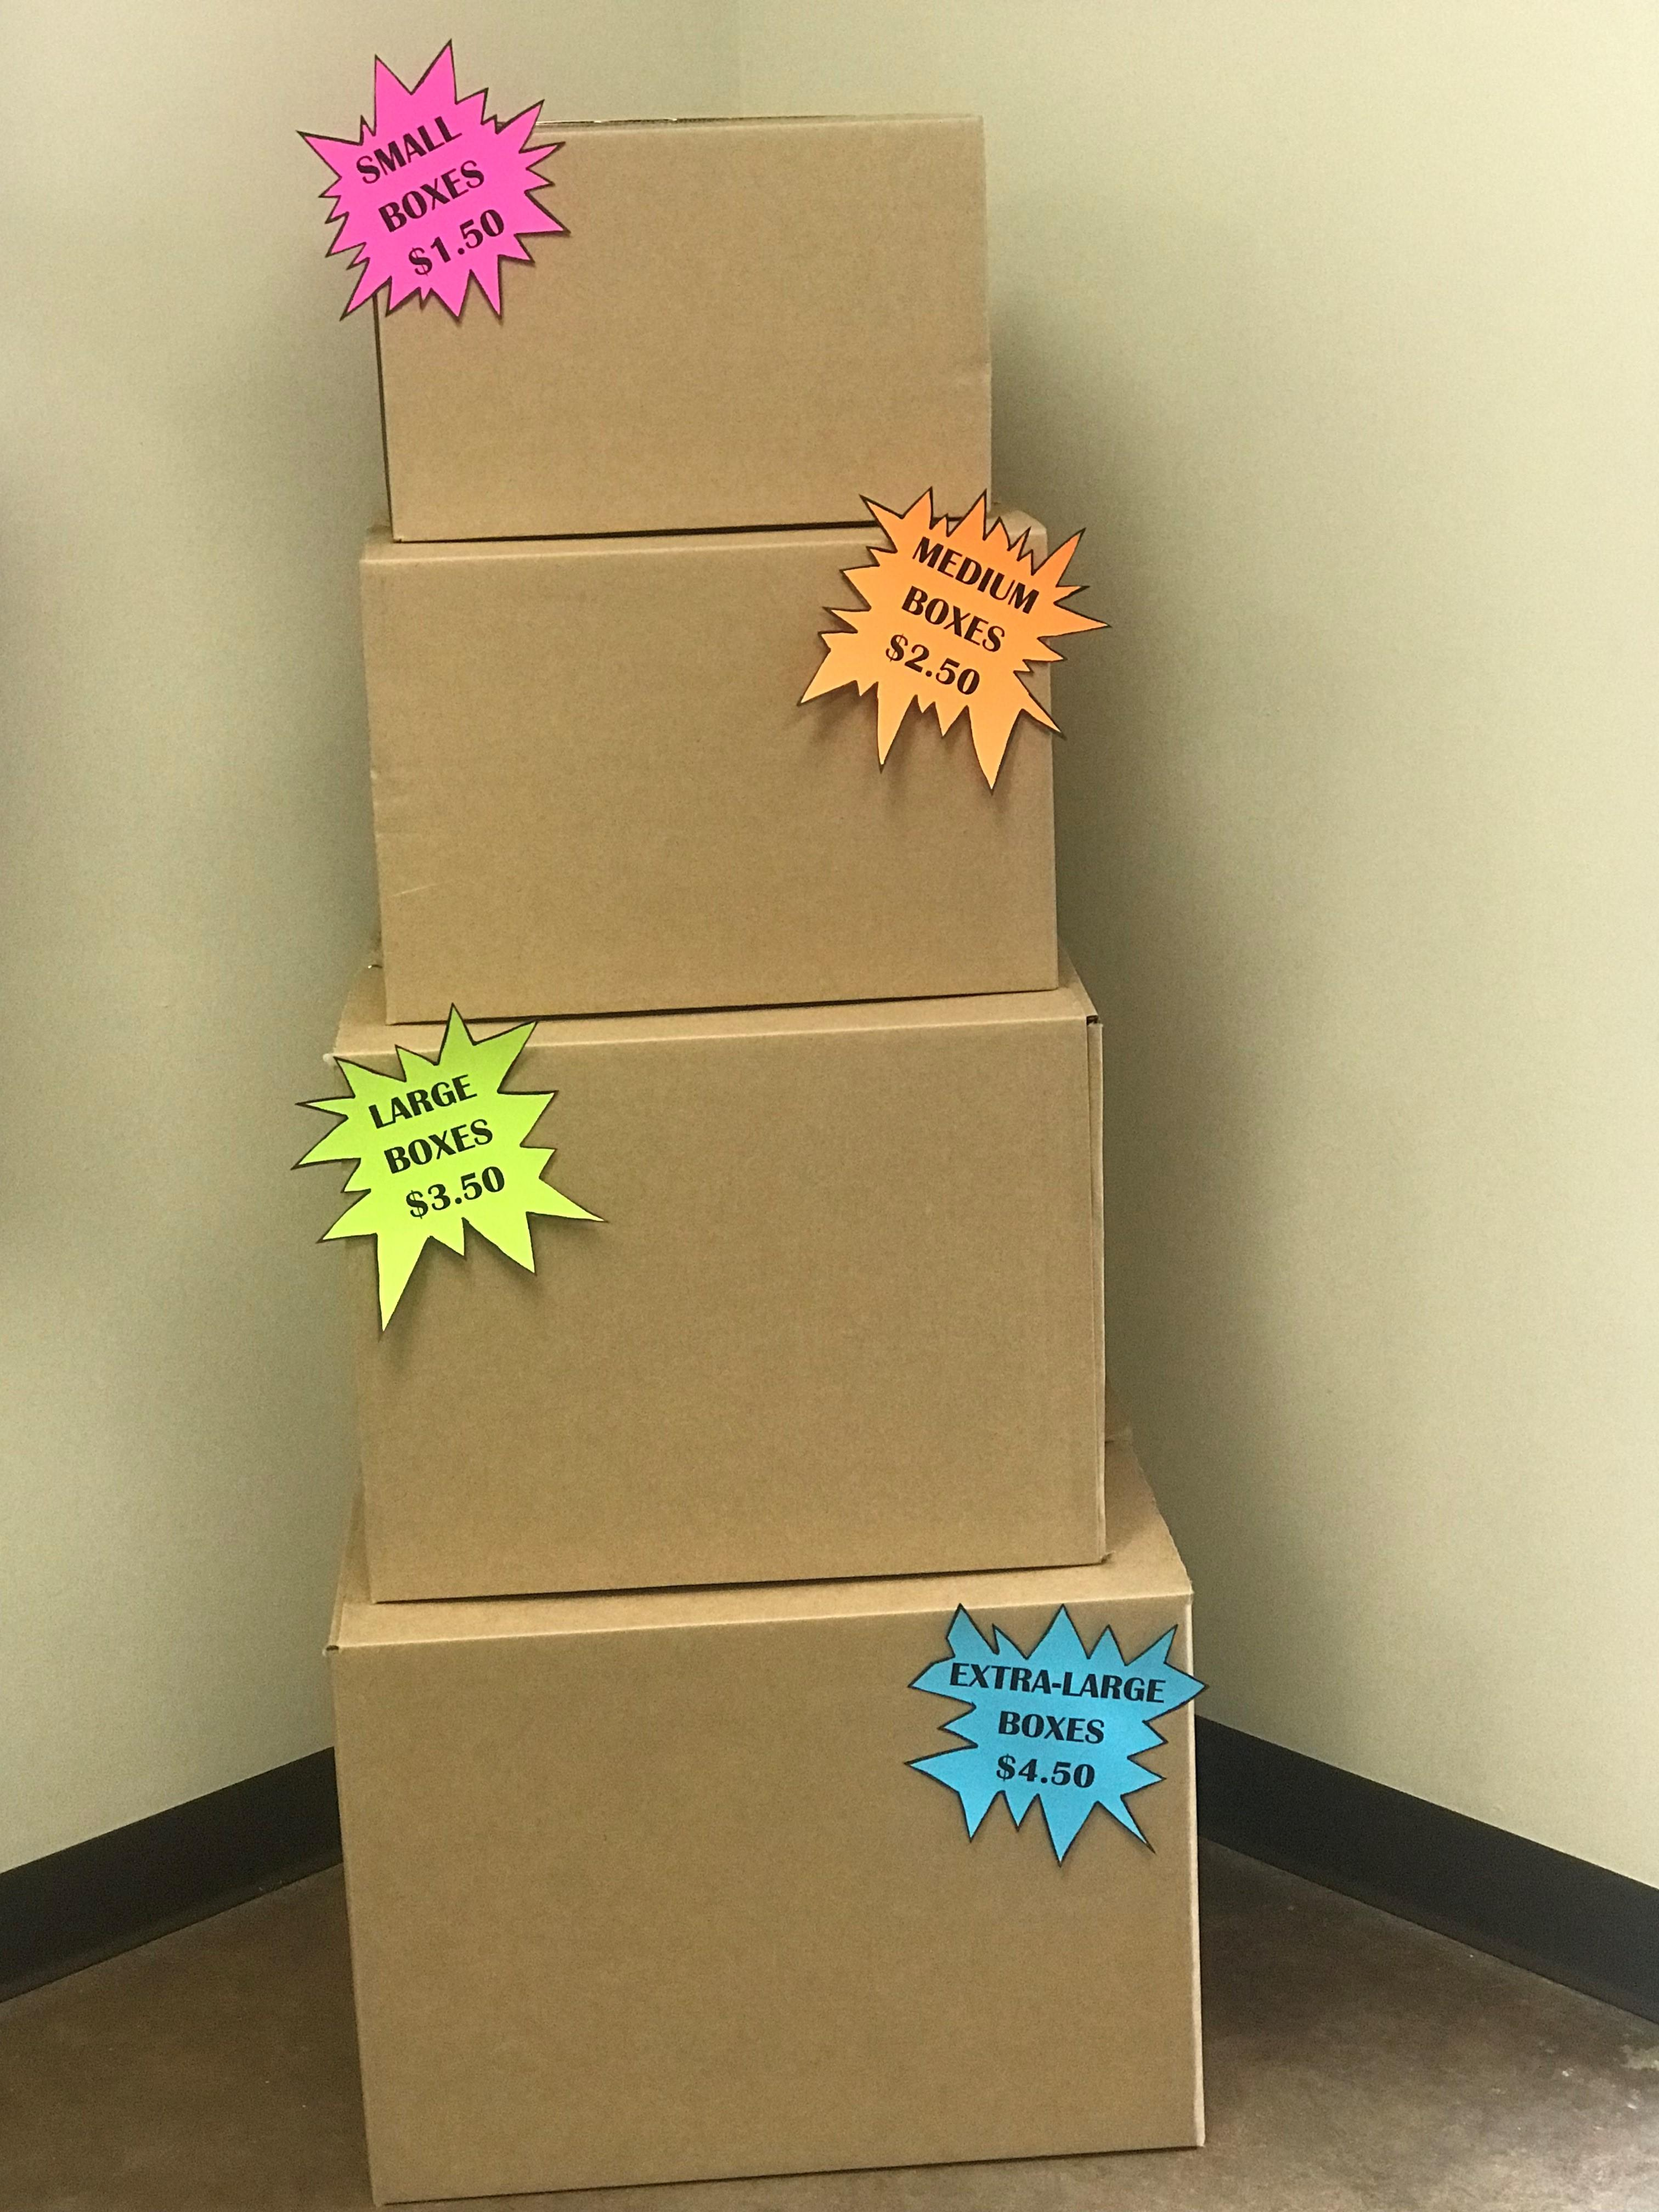 WE SELL BOXES!!